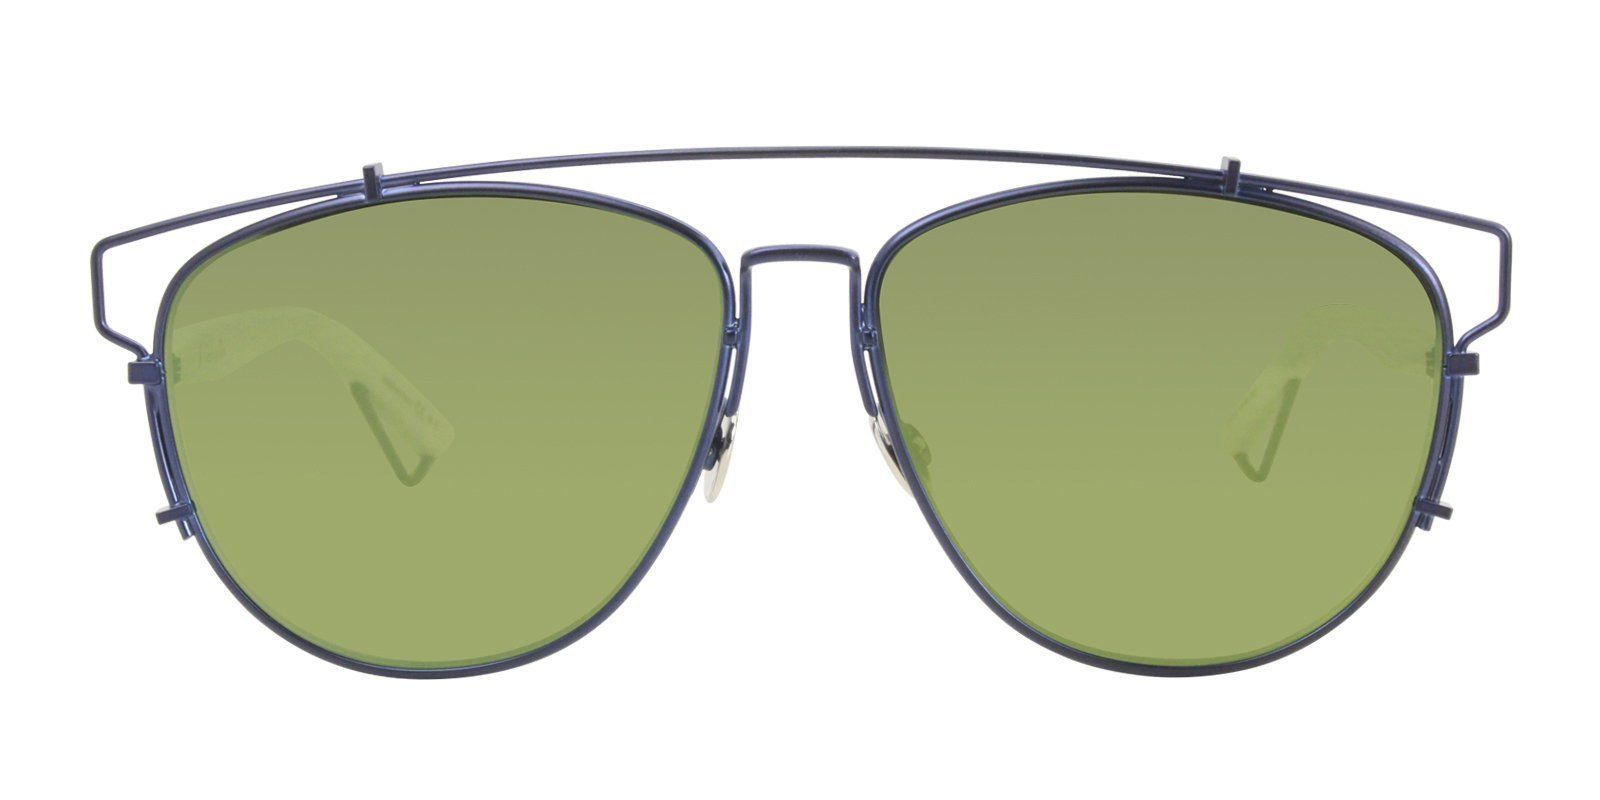 131652a8d70d Dior - Technologic Blue - Green sunglasses